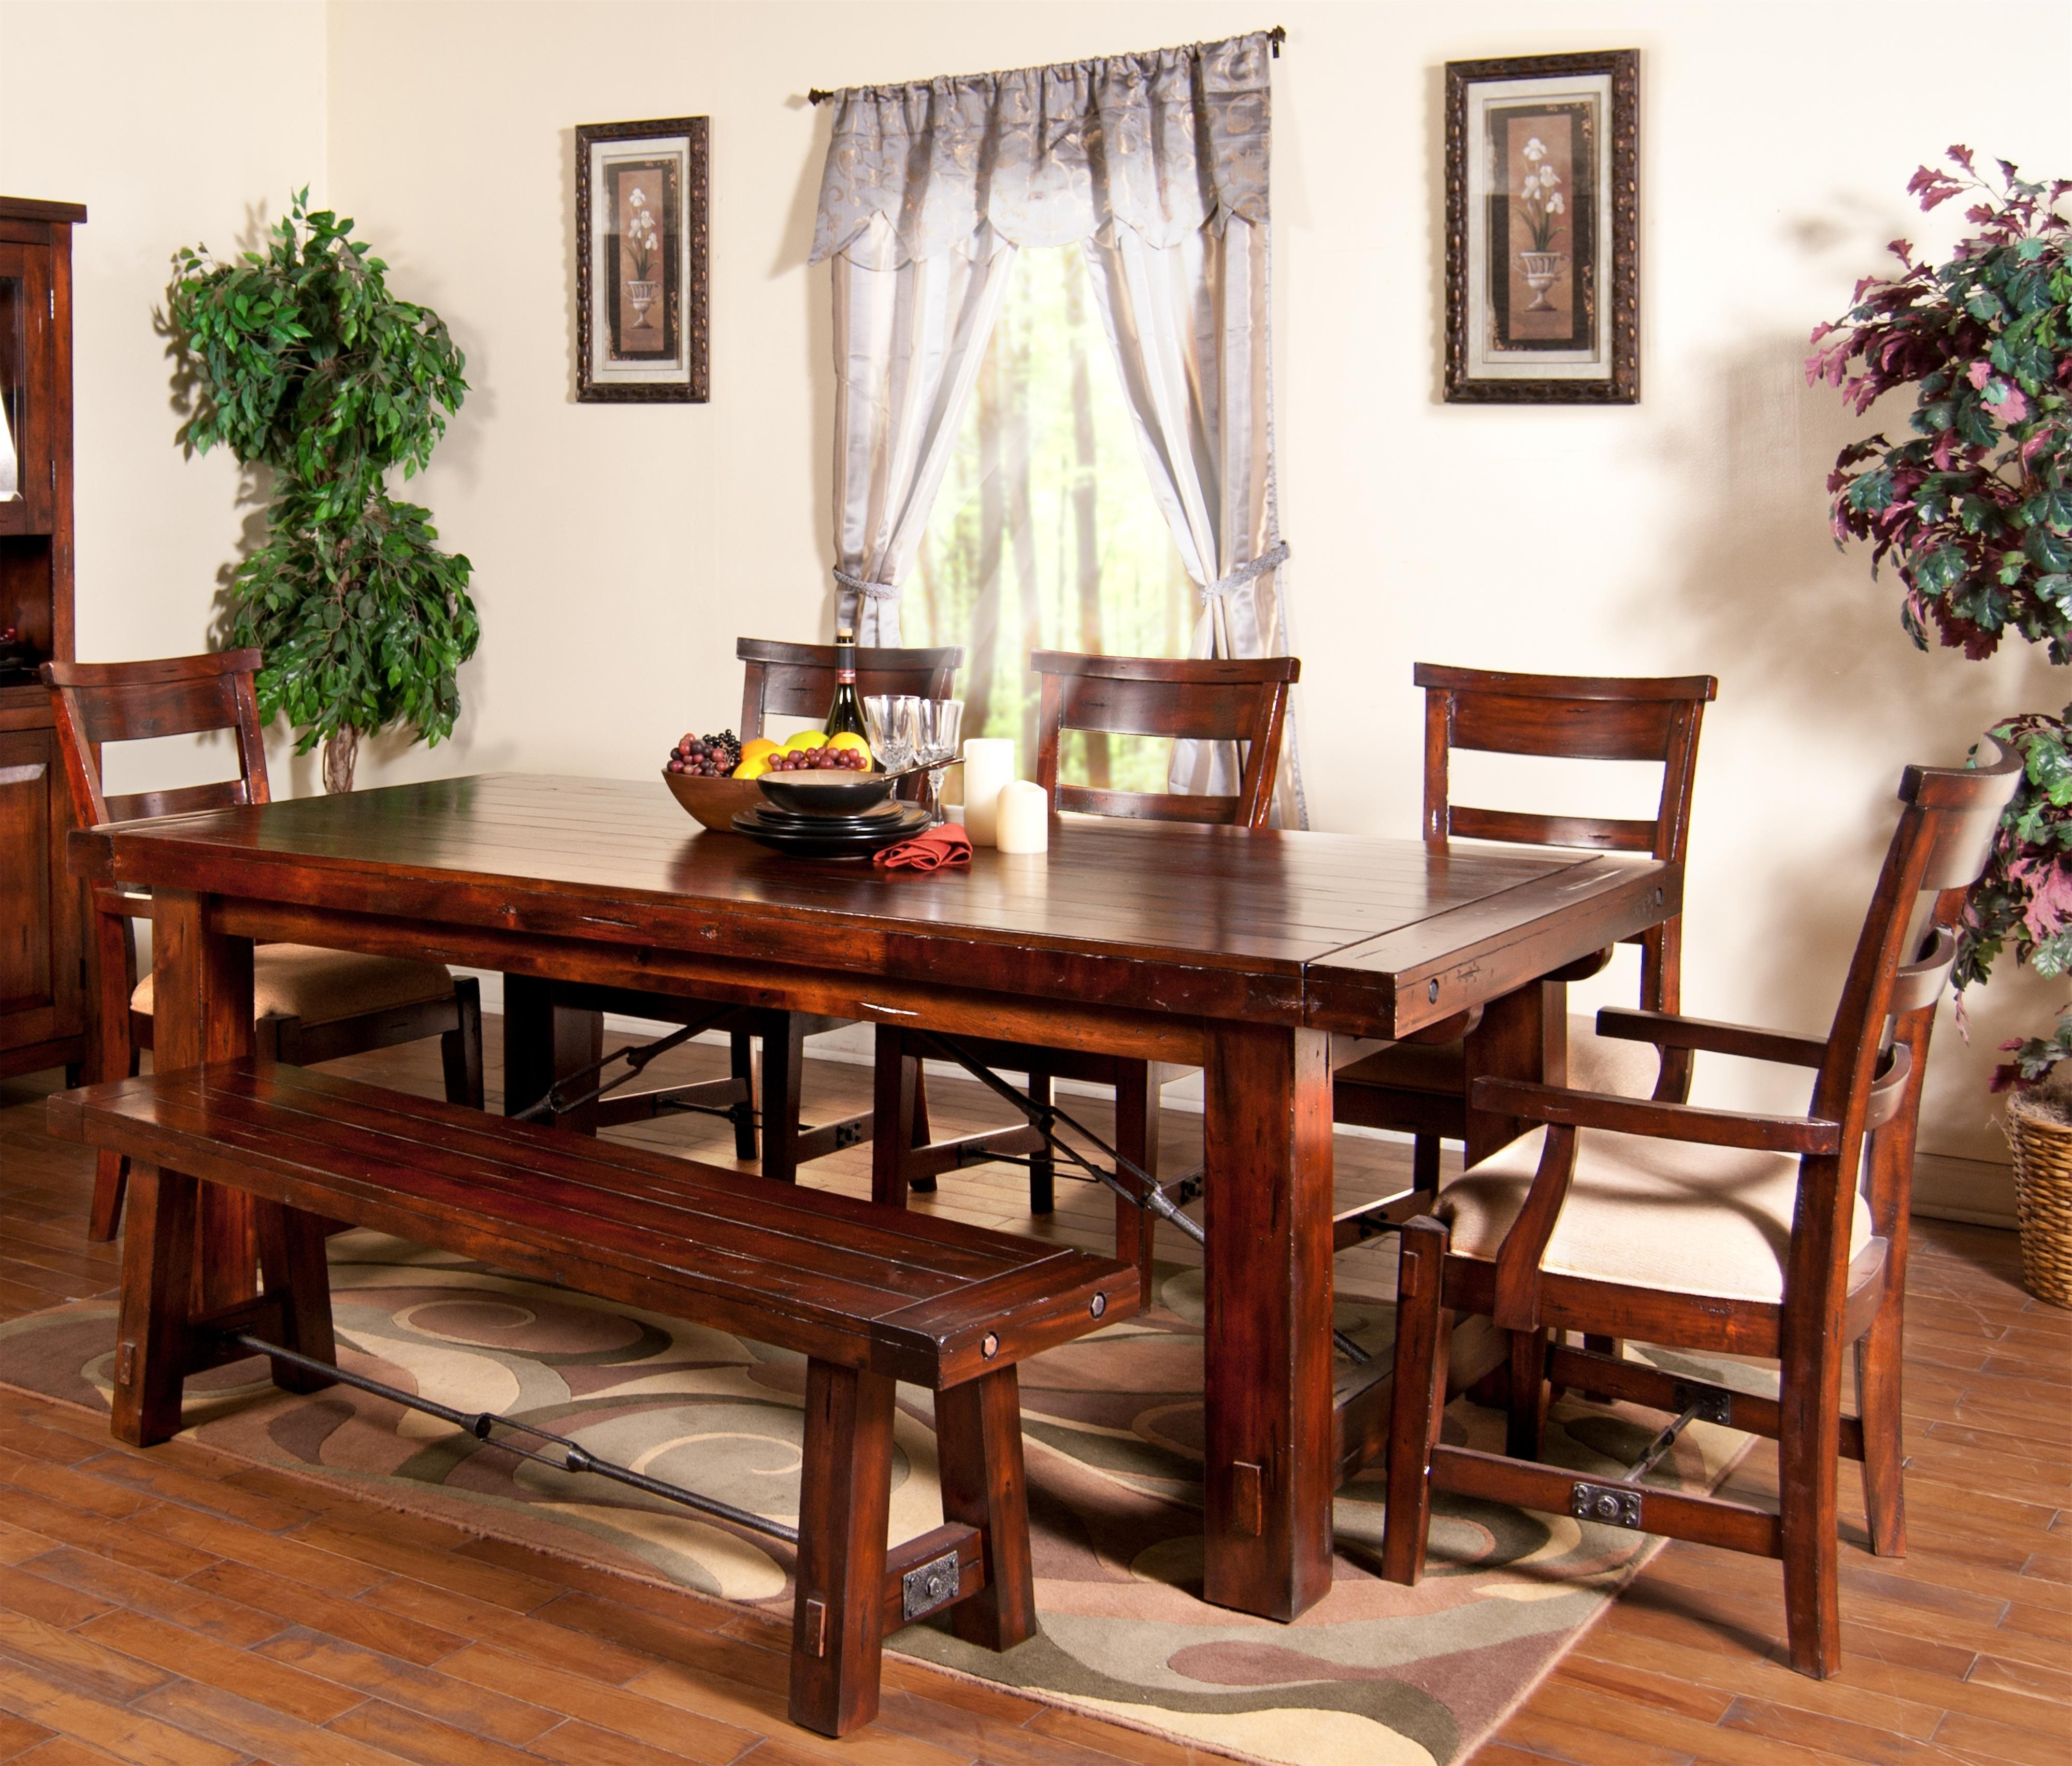 Popular Craftsman 7 Piece Rectangle Extension Dining Sets With Uph Side Chairs Throughout 7 Piece Extension Table With Chairs And Bench Setsunny Designs (View 8 of 25)